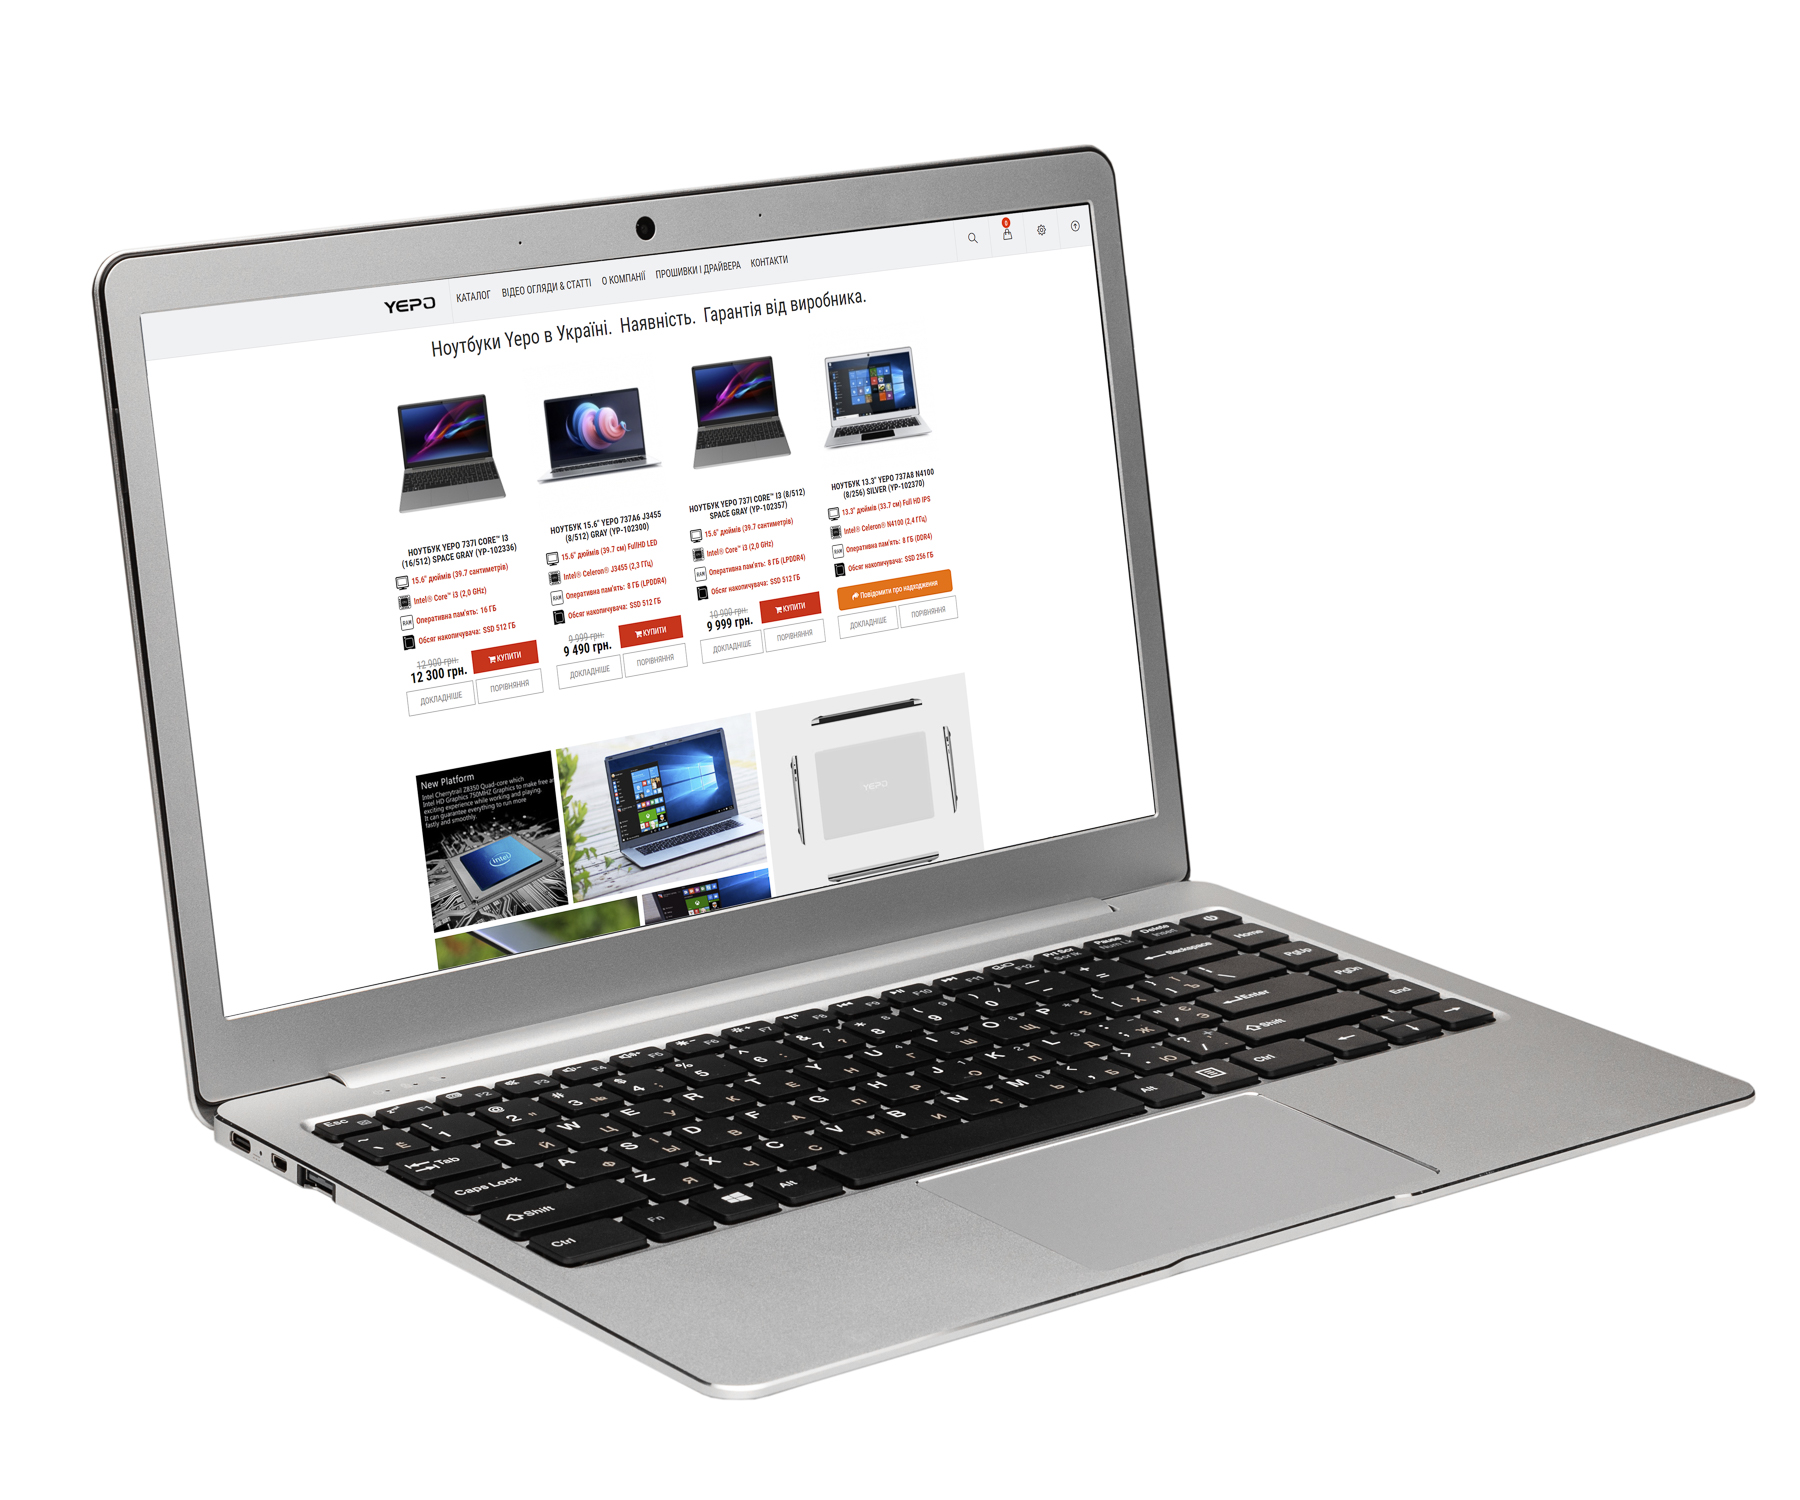 13.3 Inch Hd Ultrabook Laptops, Portable Laptops, 2 In 1 Laptops